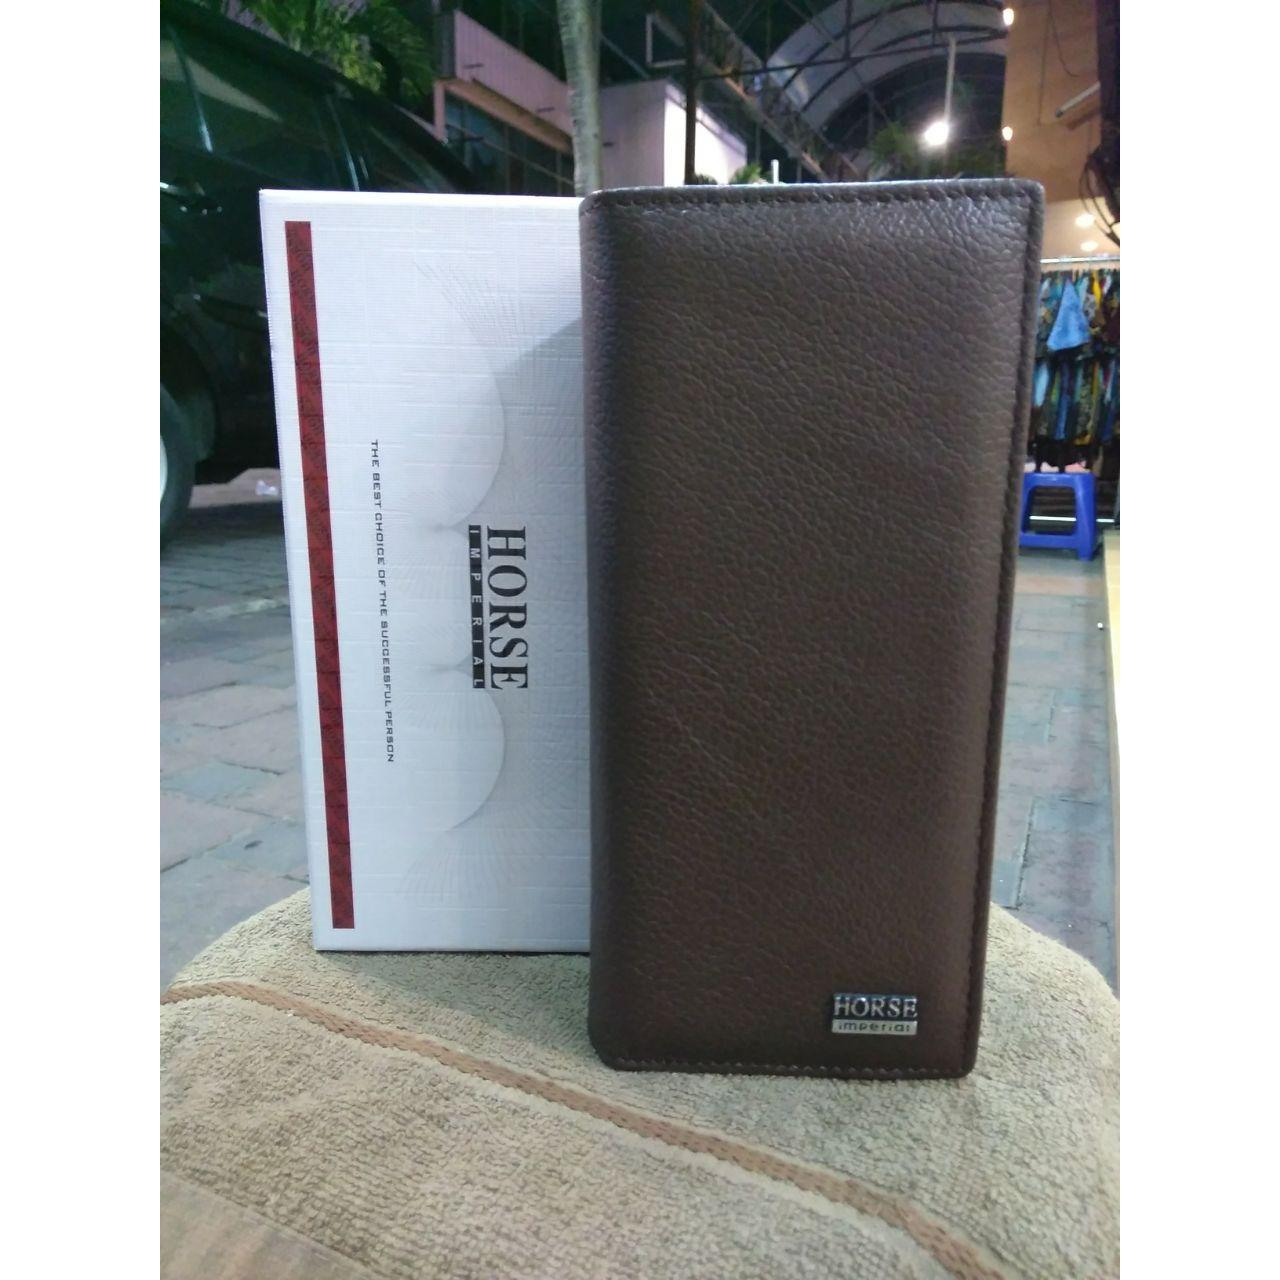 Dompet imperial horse panjang